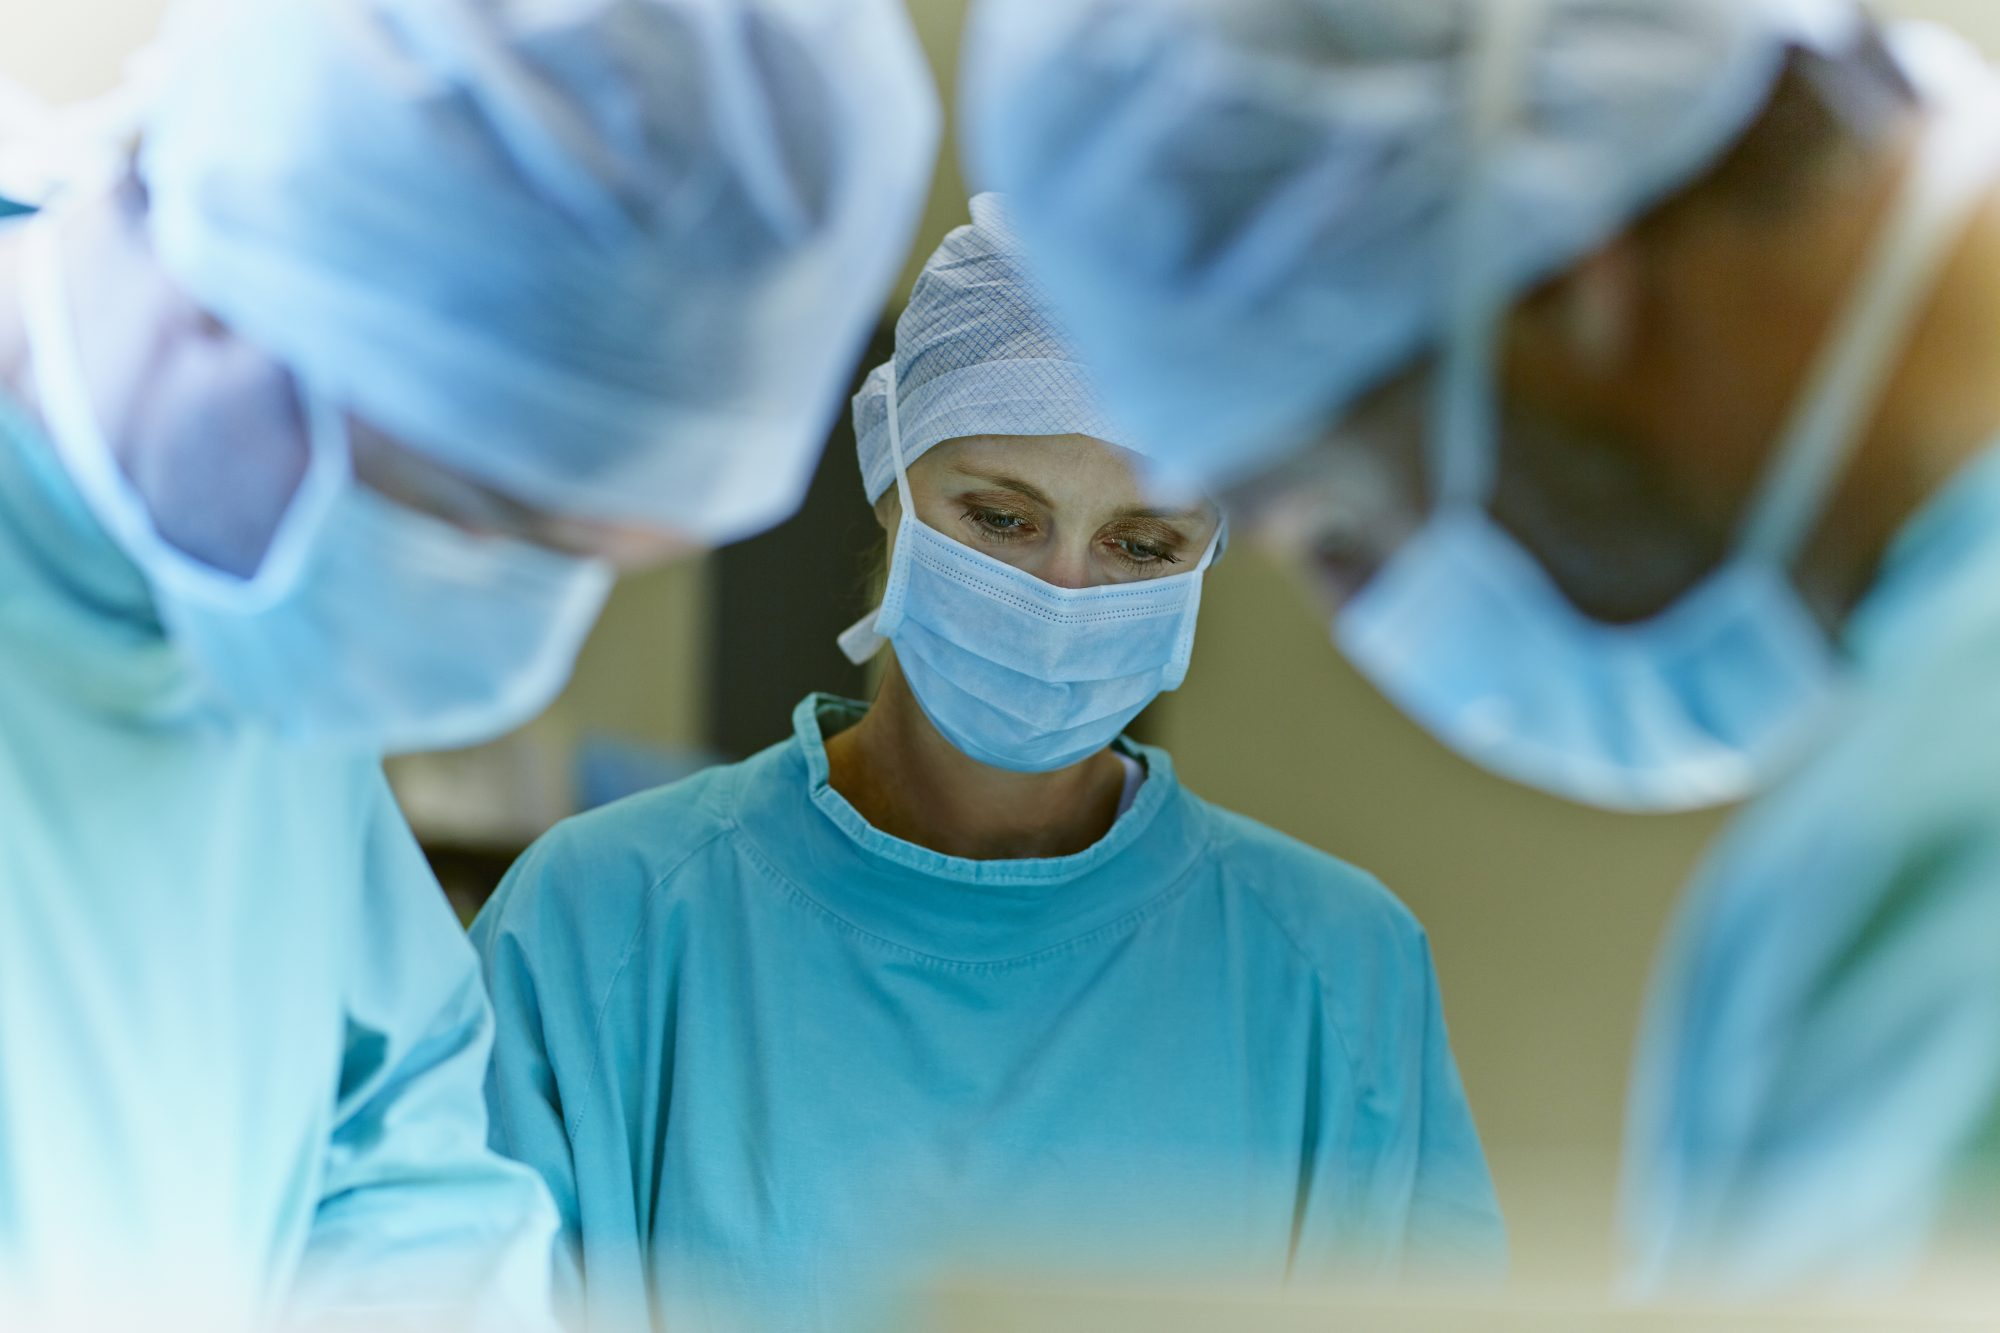 Myth: Exposing a tumor to air during surgery causes cancer to spread.